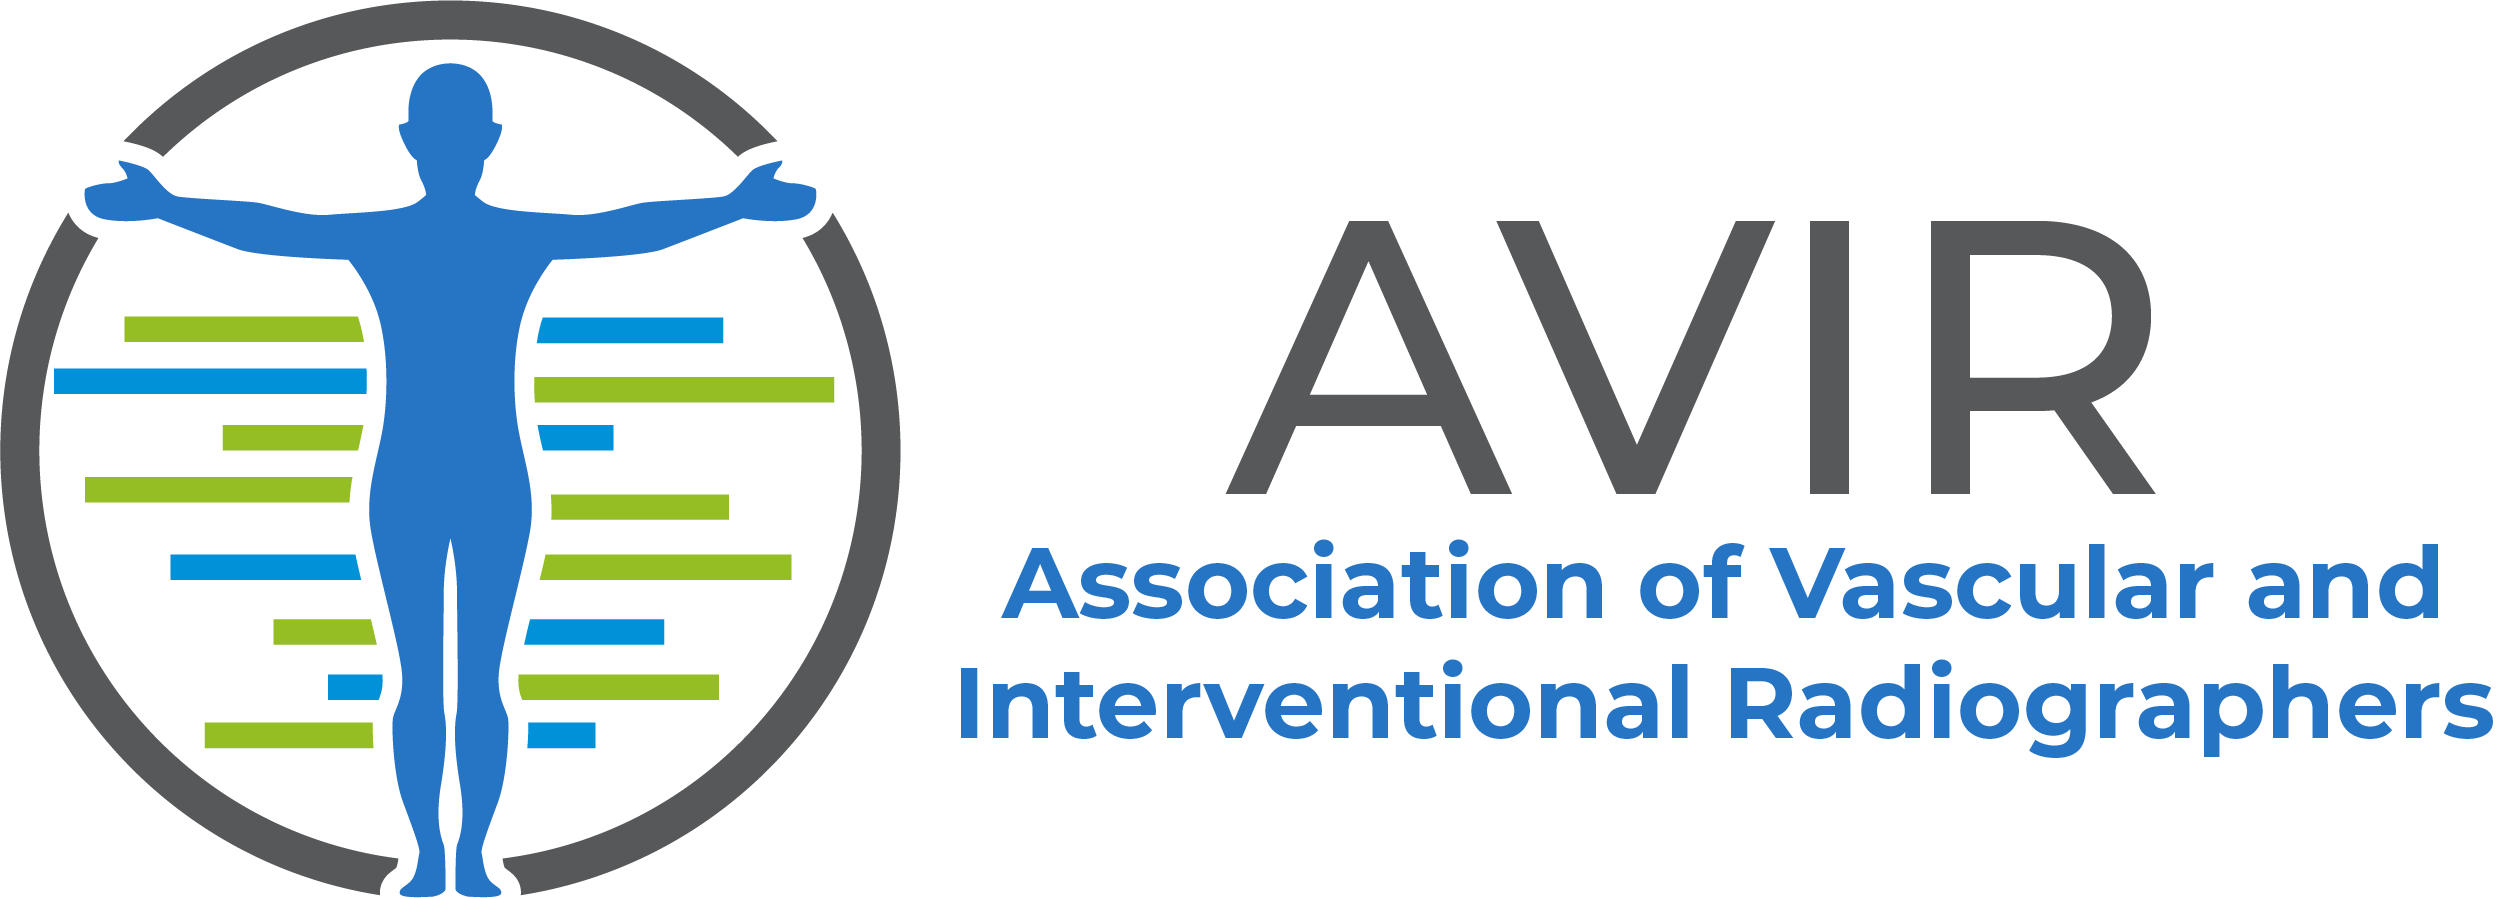 Association of Vascular and Interventional Radiographers